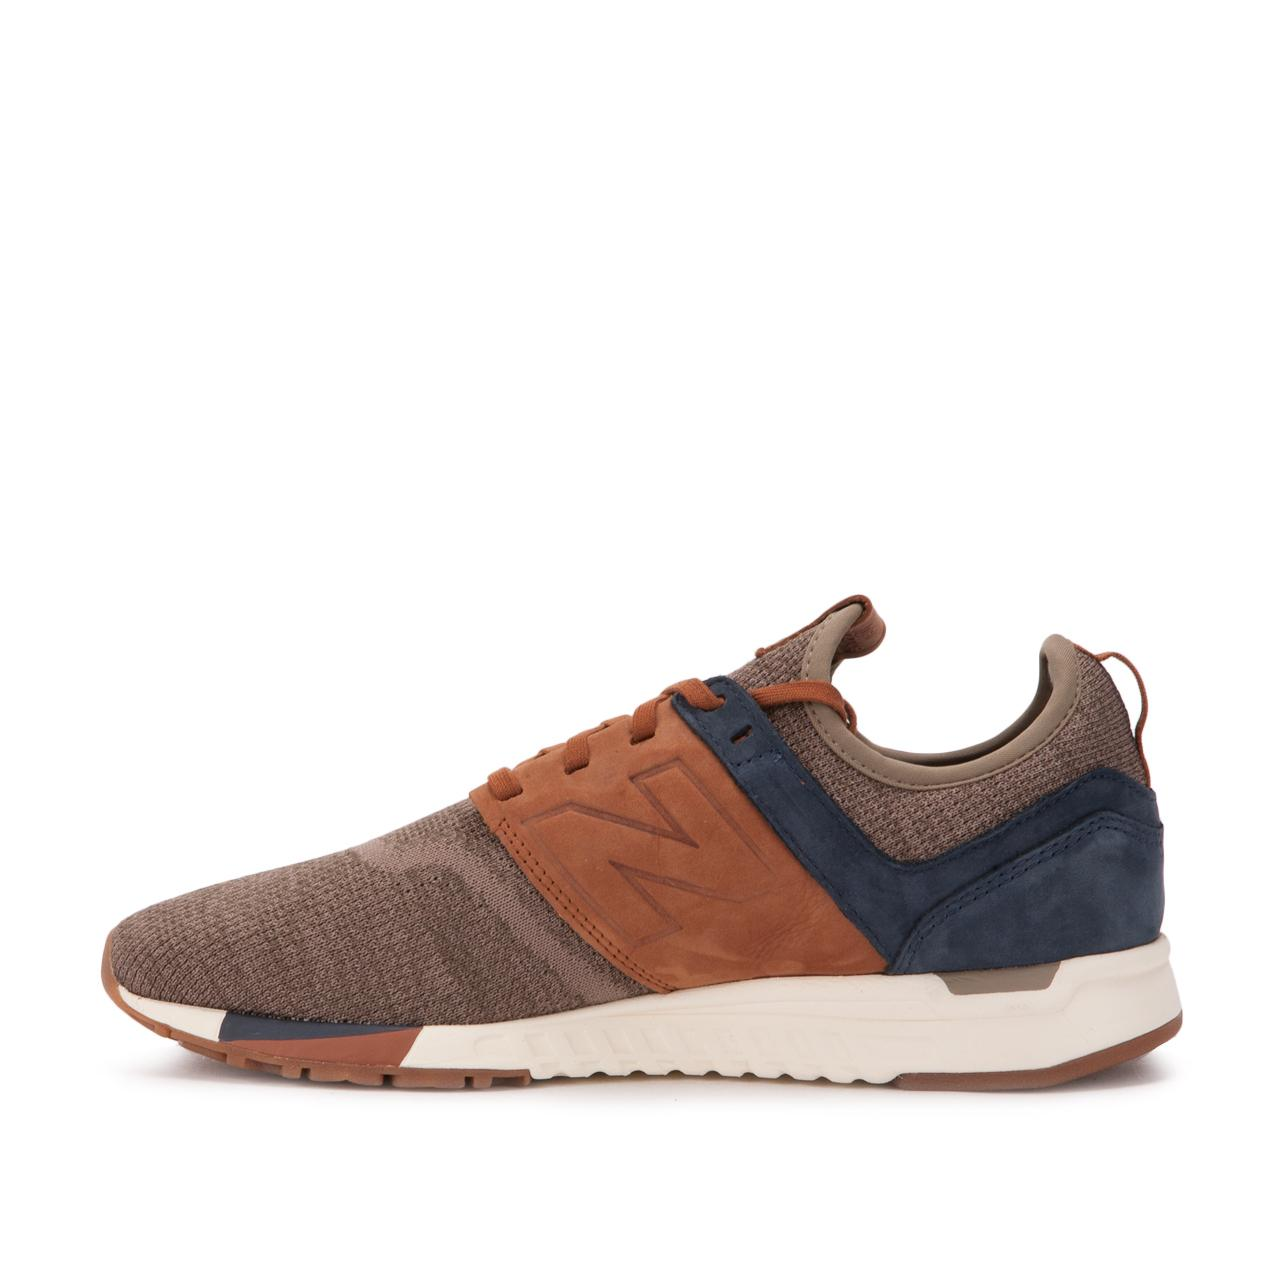 New Balance Suede Mrl 247 Lb in Brown